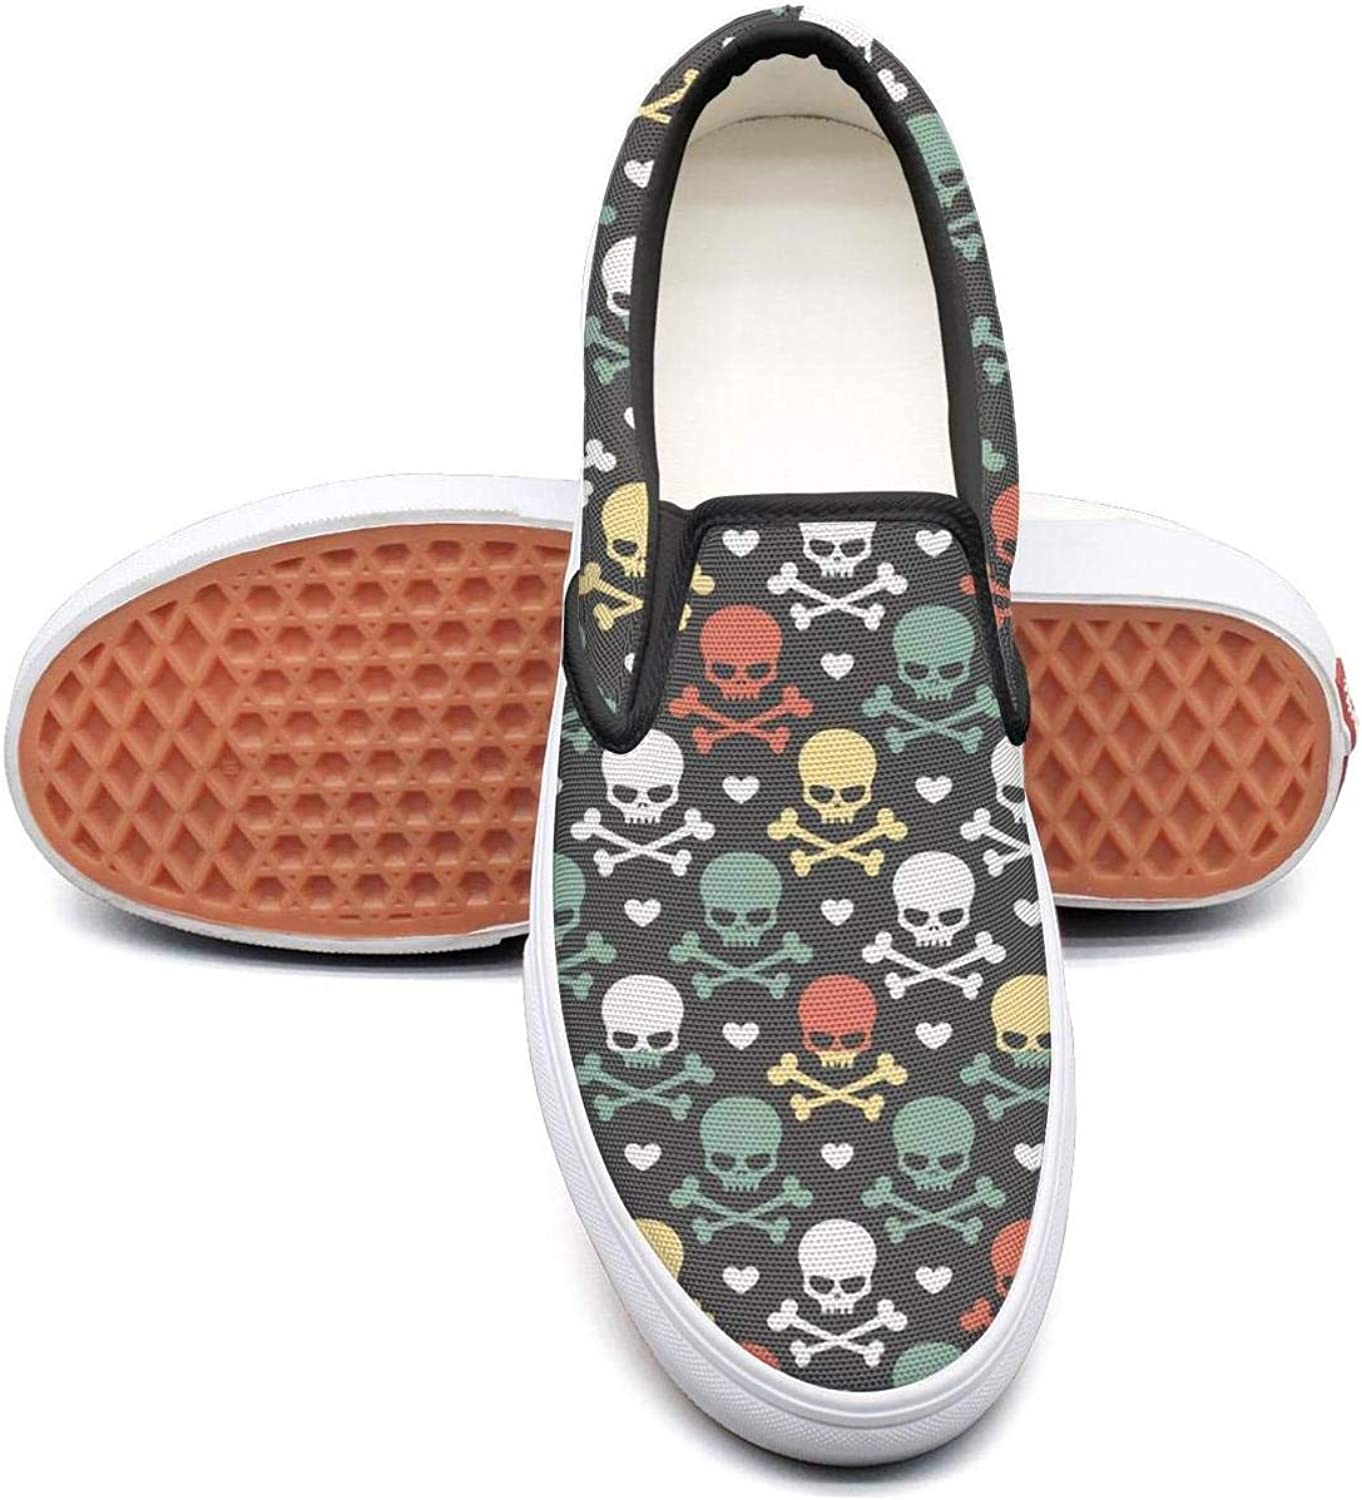 Skulls and Crossed Bones Slip On Canvas Upper Sneakers Painted Canvas Shoes Casual Shoe for Women Round Toe